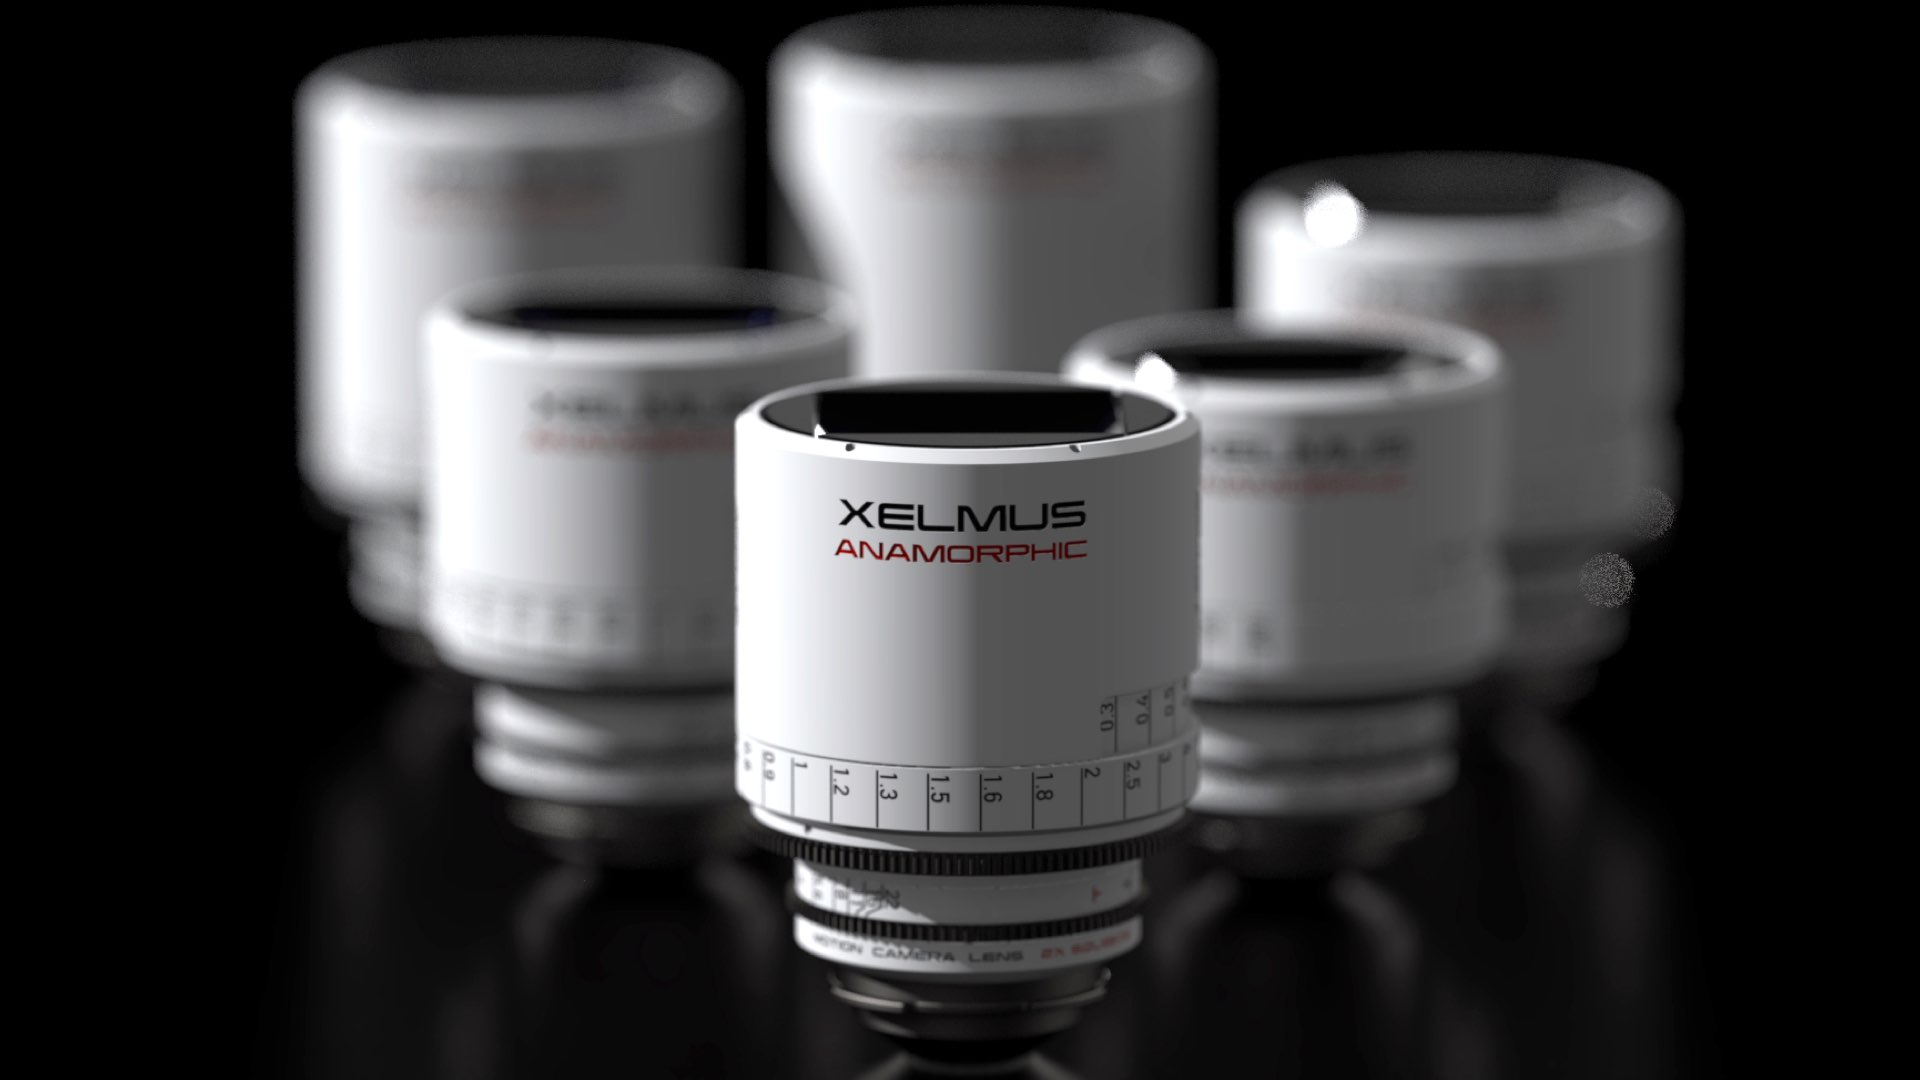 Xelmus Apollo 2x Anamorphic Lenses: New and Affordable